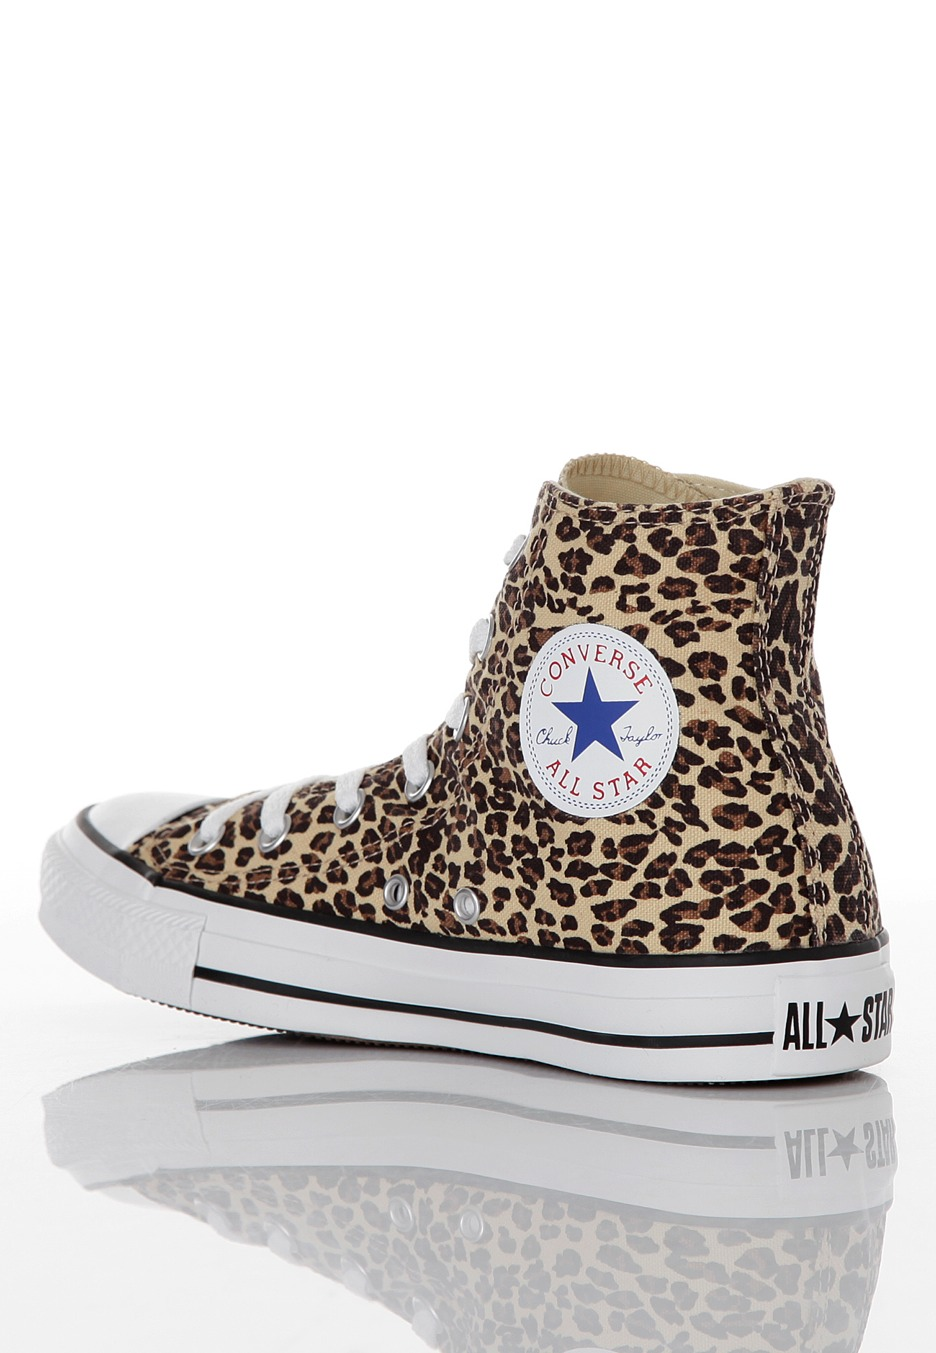 9ed45f7ed4c2 ... Converse - CT All Star Specialty Hi Leopard Print - Girl Shoes ...